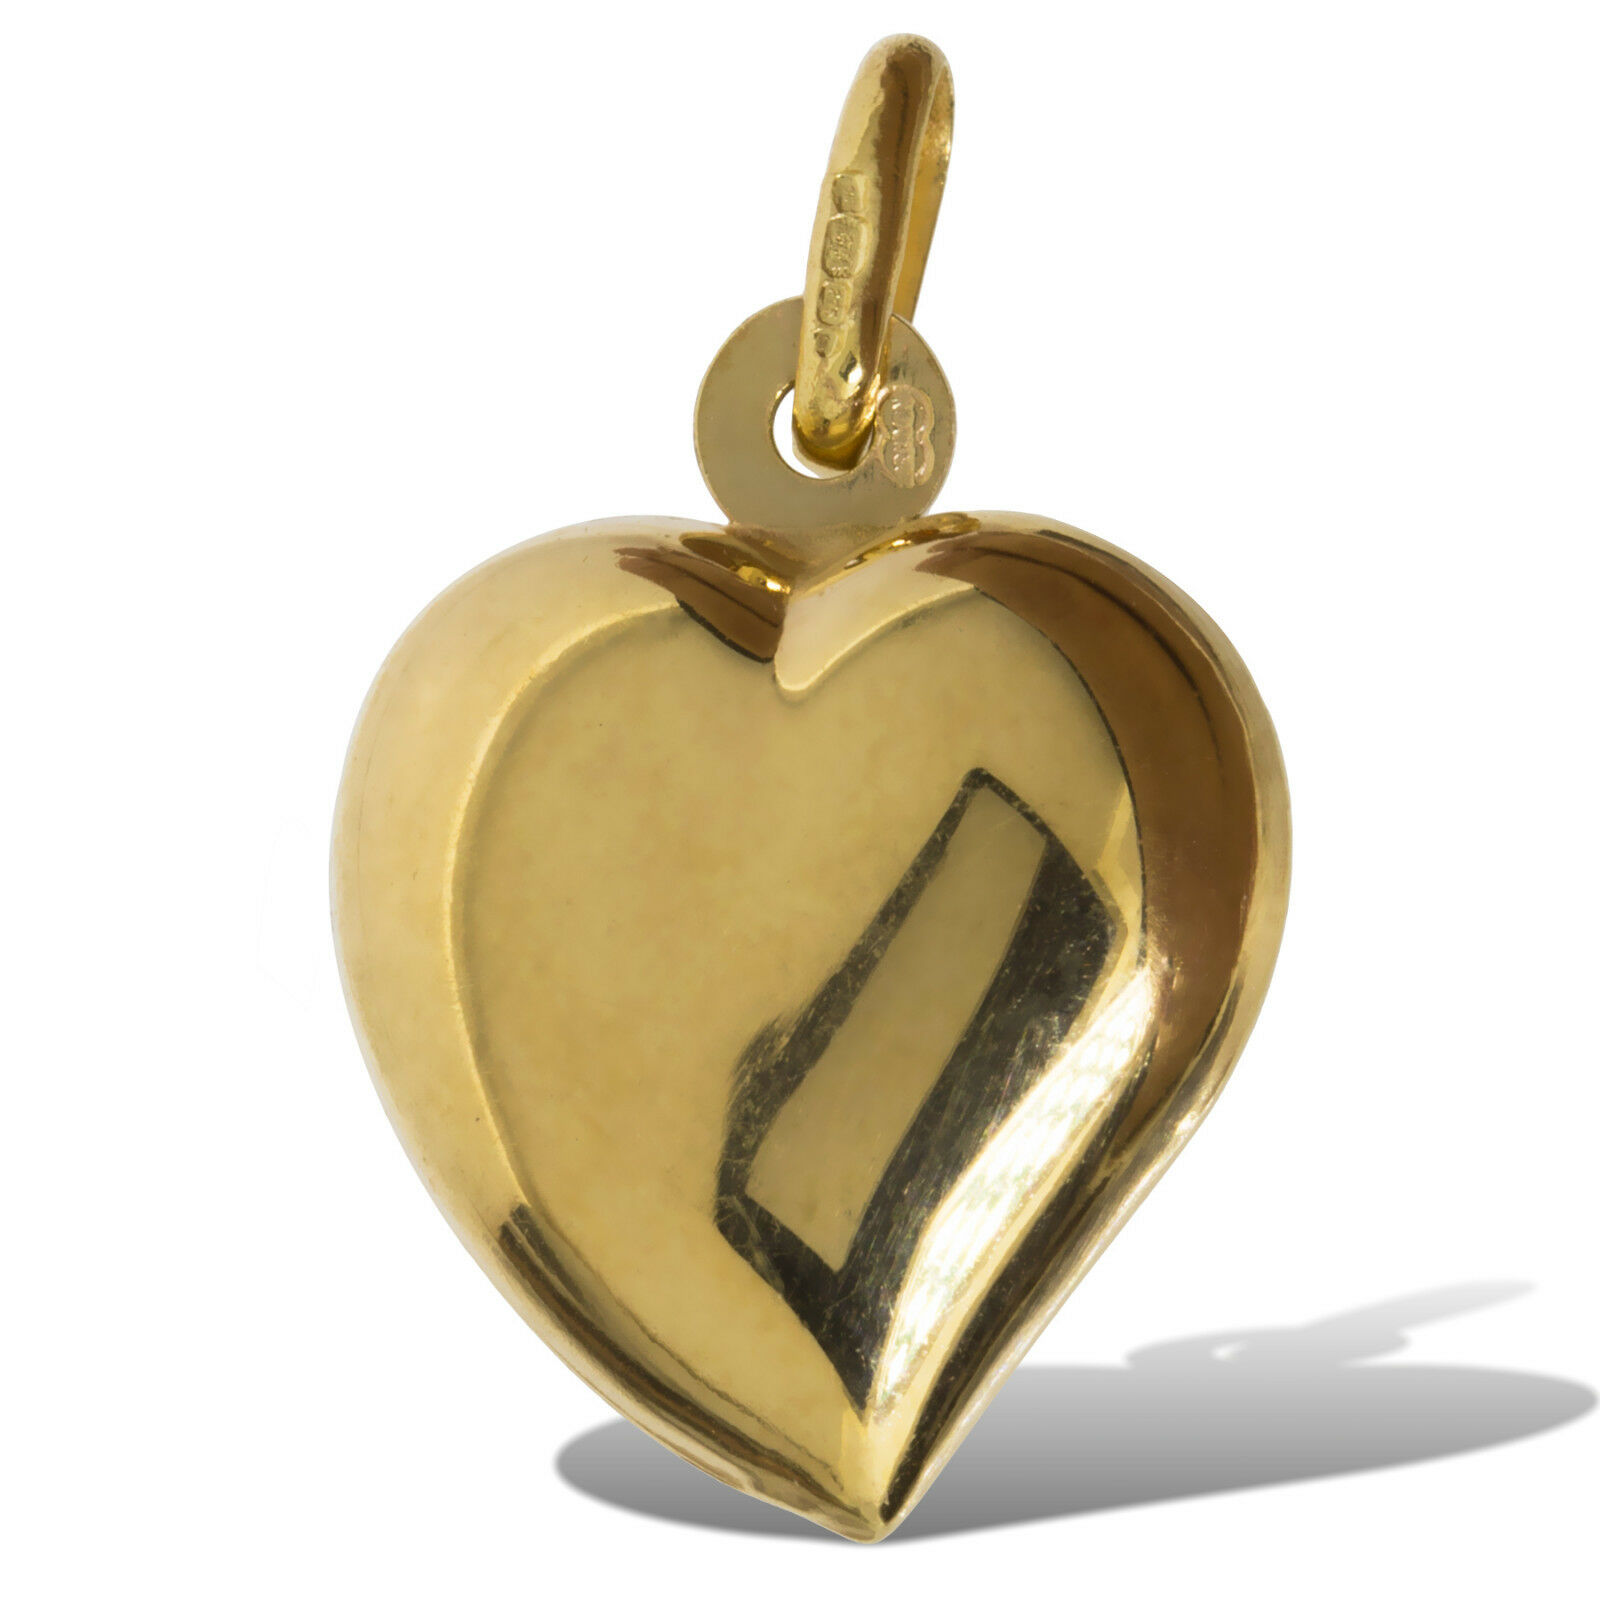 9CT GOLD HEART 14MM HEART POLISHED HANGING  HEART CHARM MEDAL BRACELET OR CHAIN